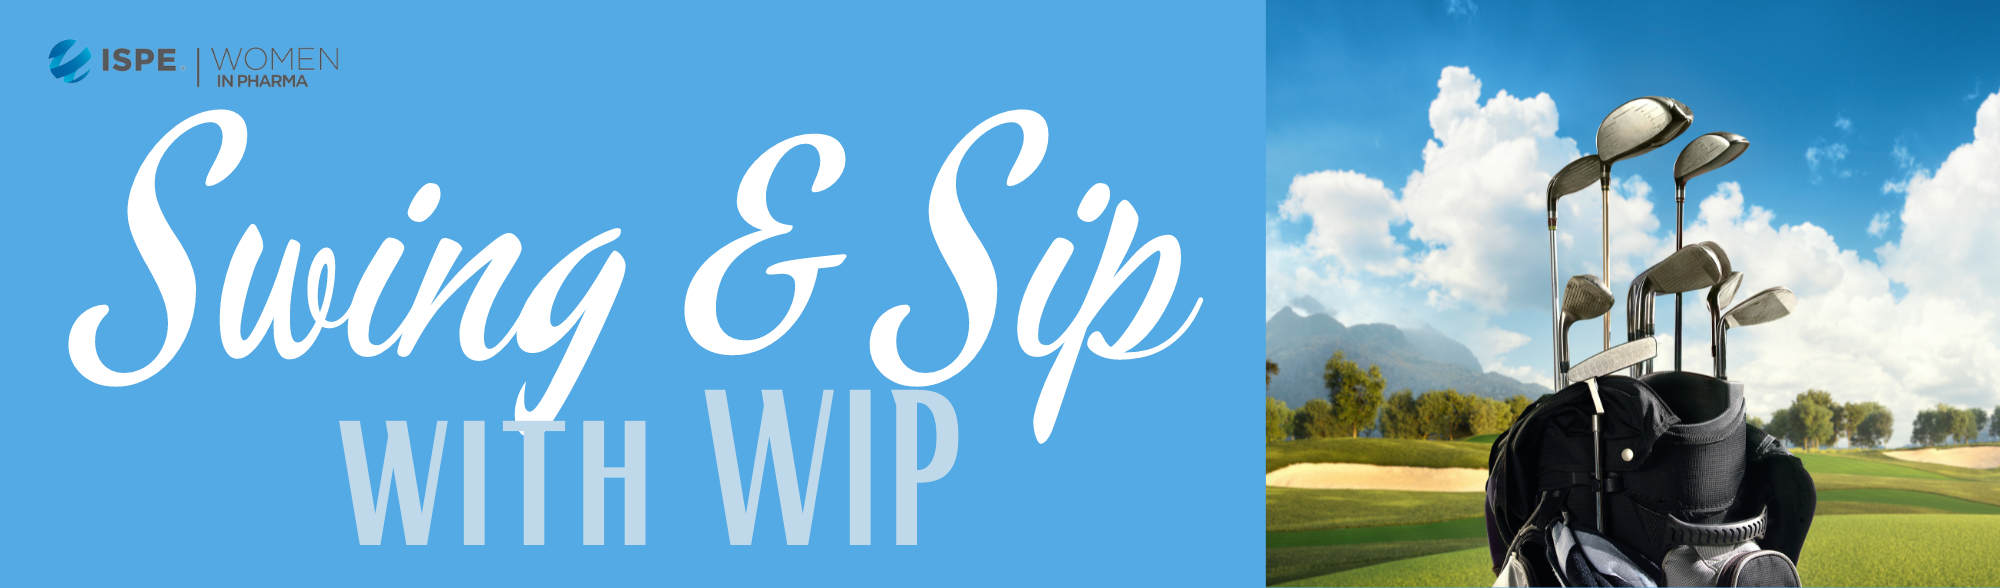 ISPE Swing and Sip with WIP